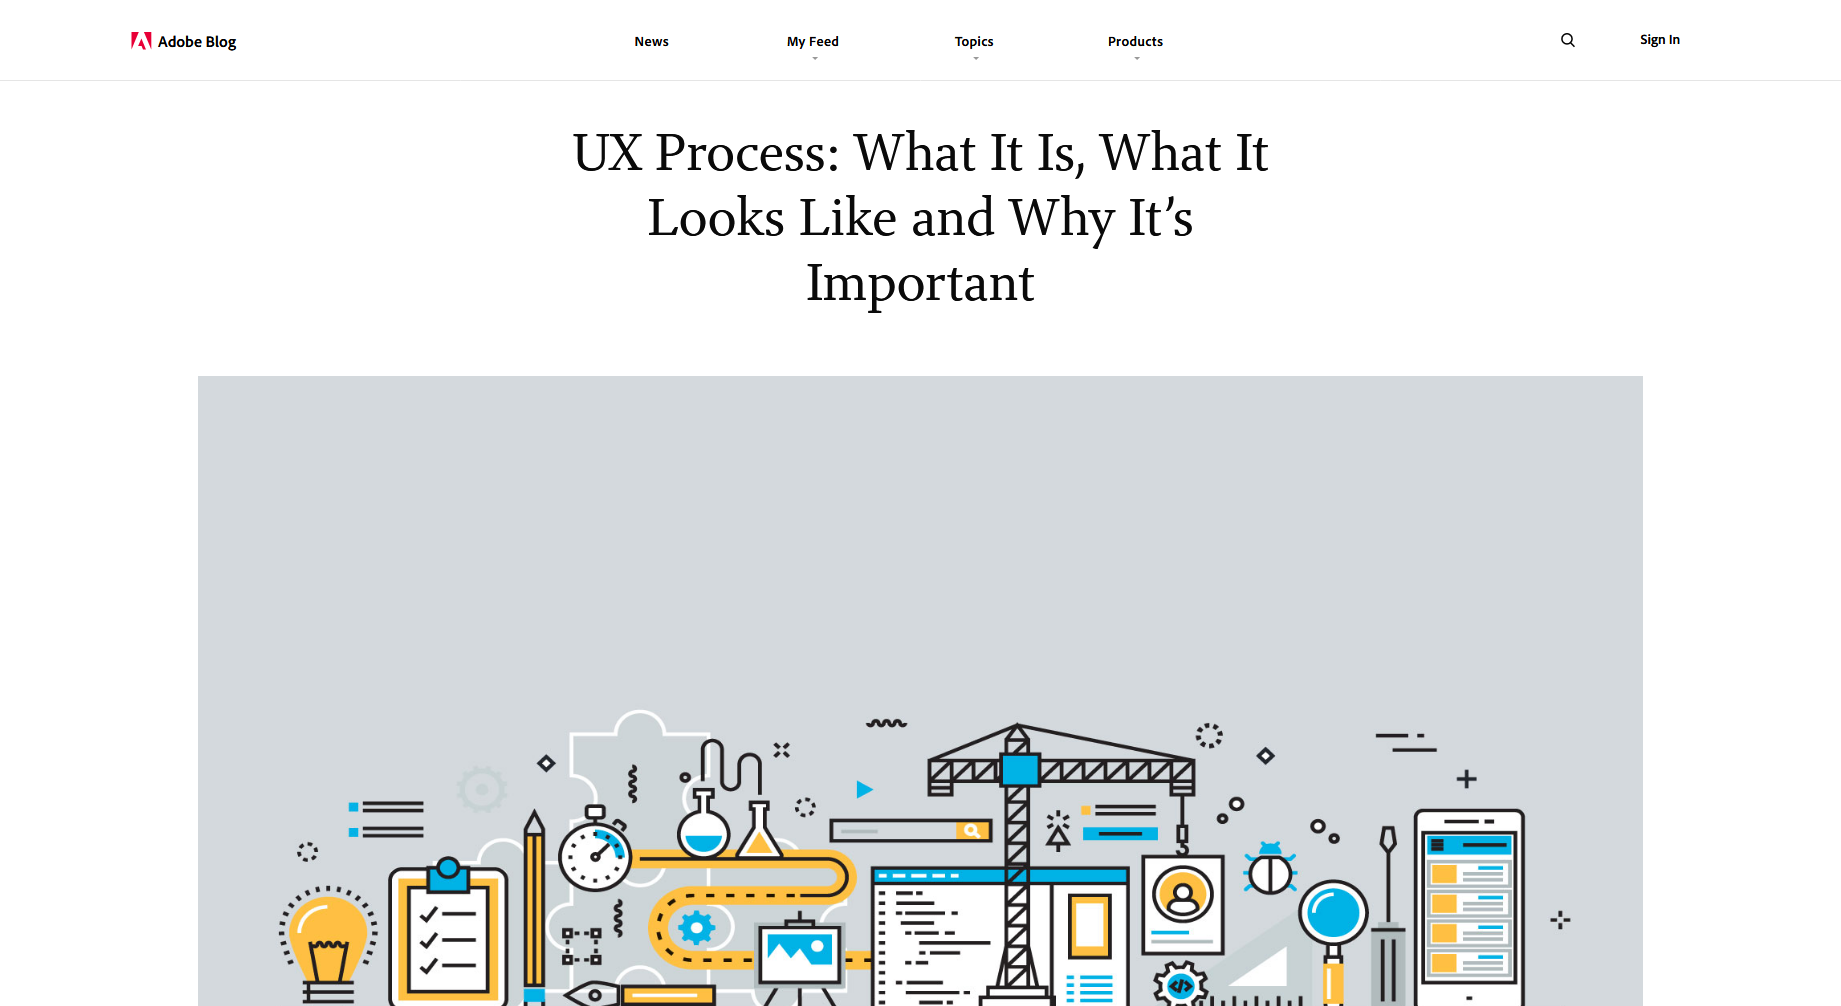 UX Process: What It Is, What It Looks Like and Why It's Important — Abode